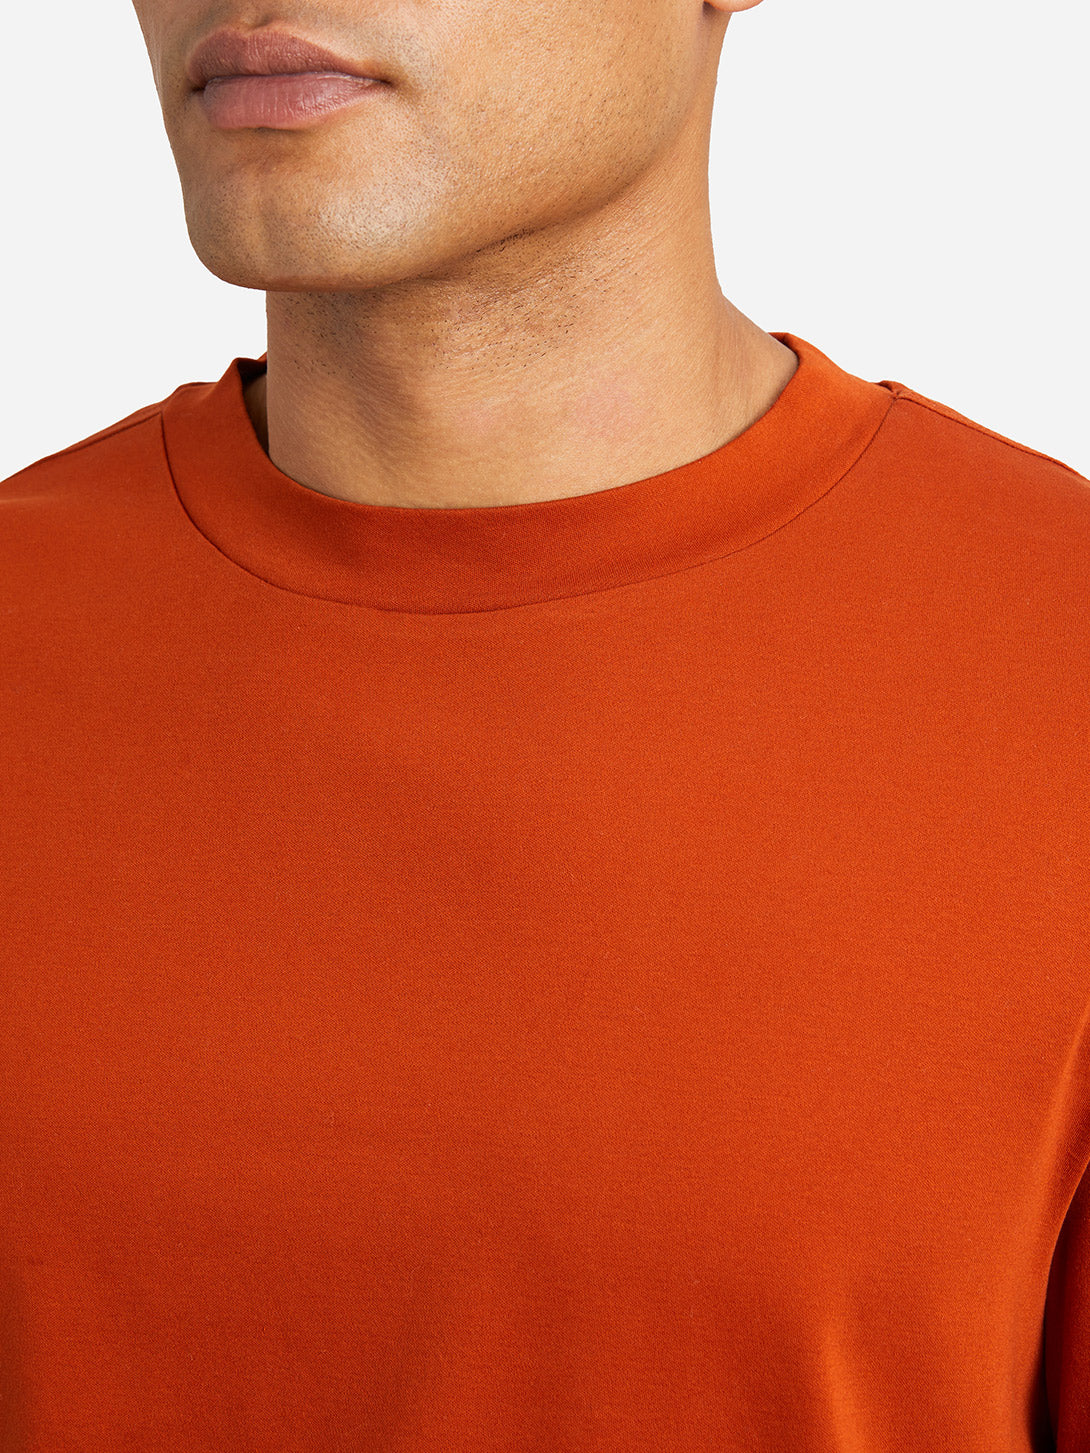 ORANGE long sleeve tee mascot tee orange ons clothing